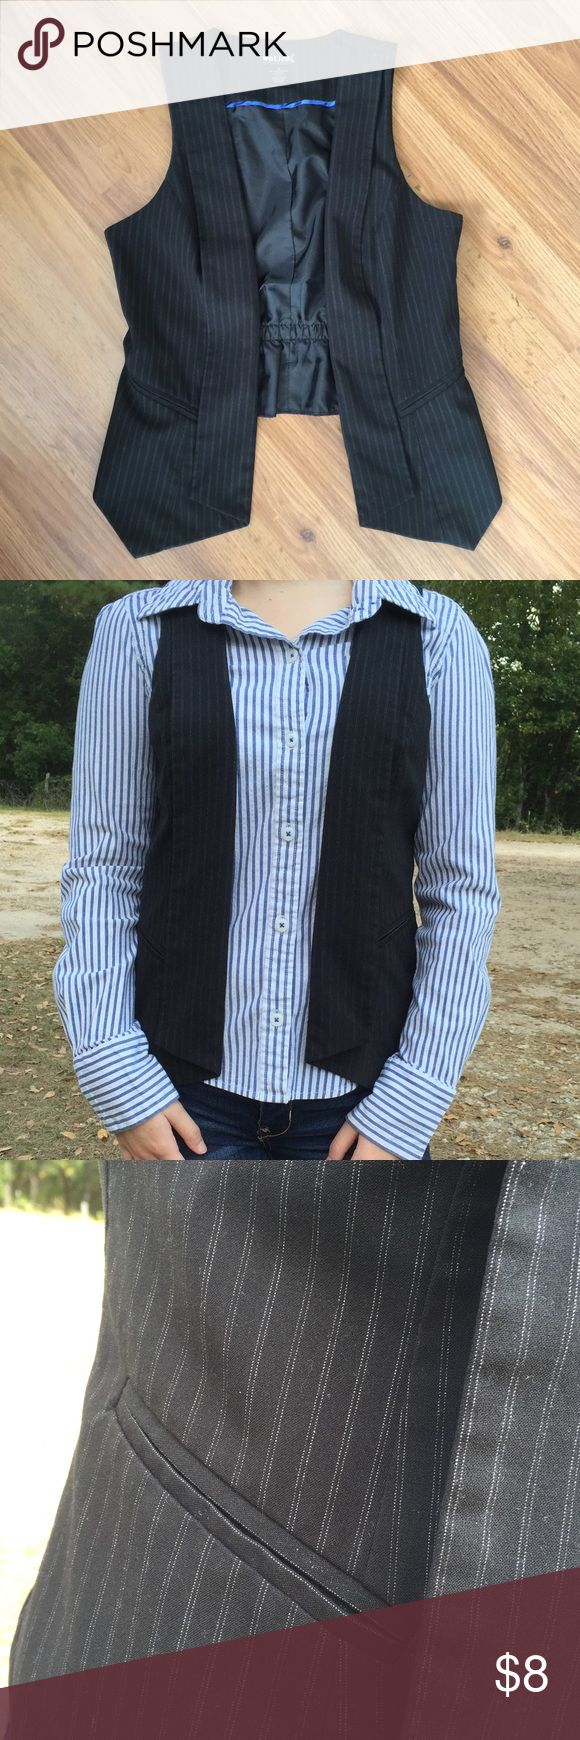 """😎 Pinstriped Rocker Vest This best of perfect for adding spunk to your wardrobe. Lightly used, no flaws, fully lined. Measurements on front are 23"""" long, 18"""" long in the back, laying flat 17"""" armpit to armpit. The best has two faux pockets in the front. Let me know if you have any questions. Bundle from my closet to get an awesome deal! 😆🎉 Wet Seal Jackets & Coats Vests"""